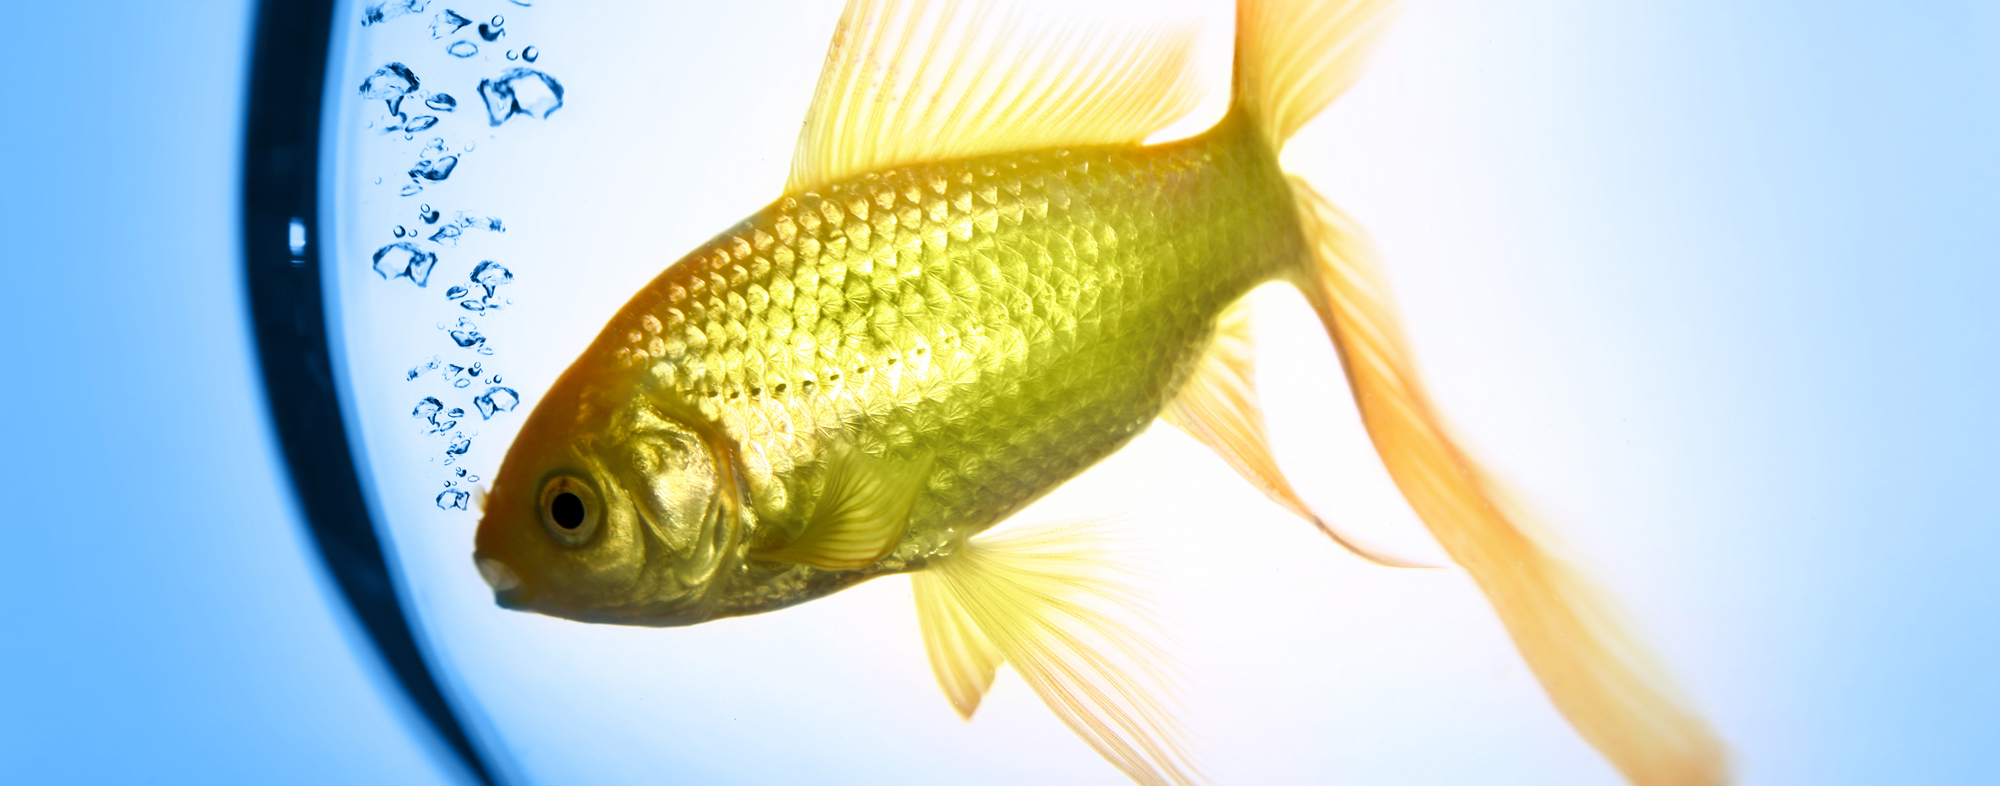 Your pet fish requires an aquarium with safe and tested water